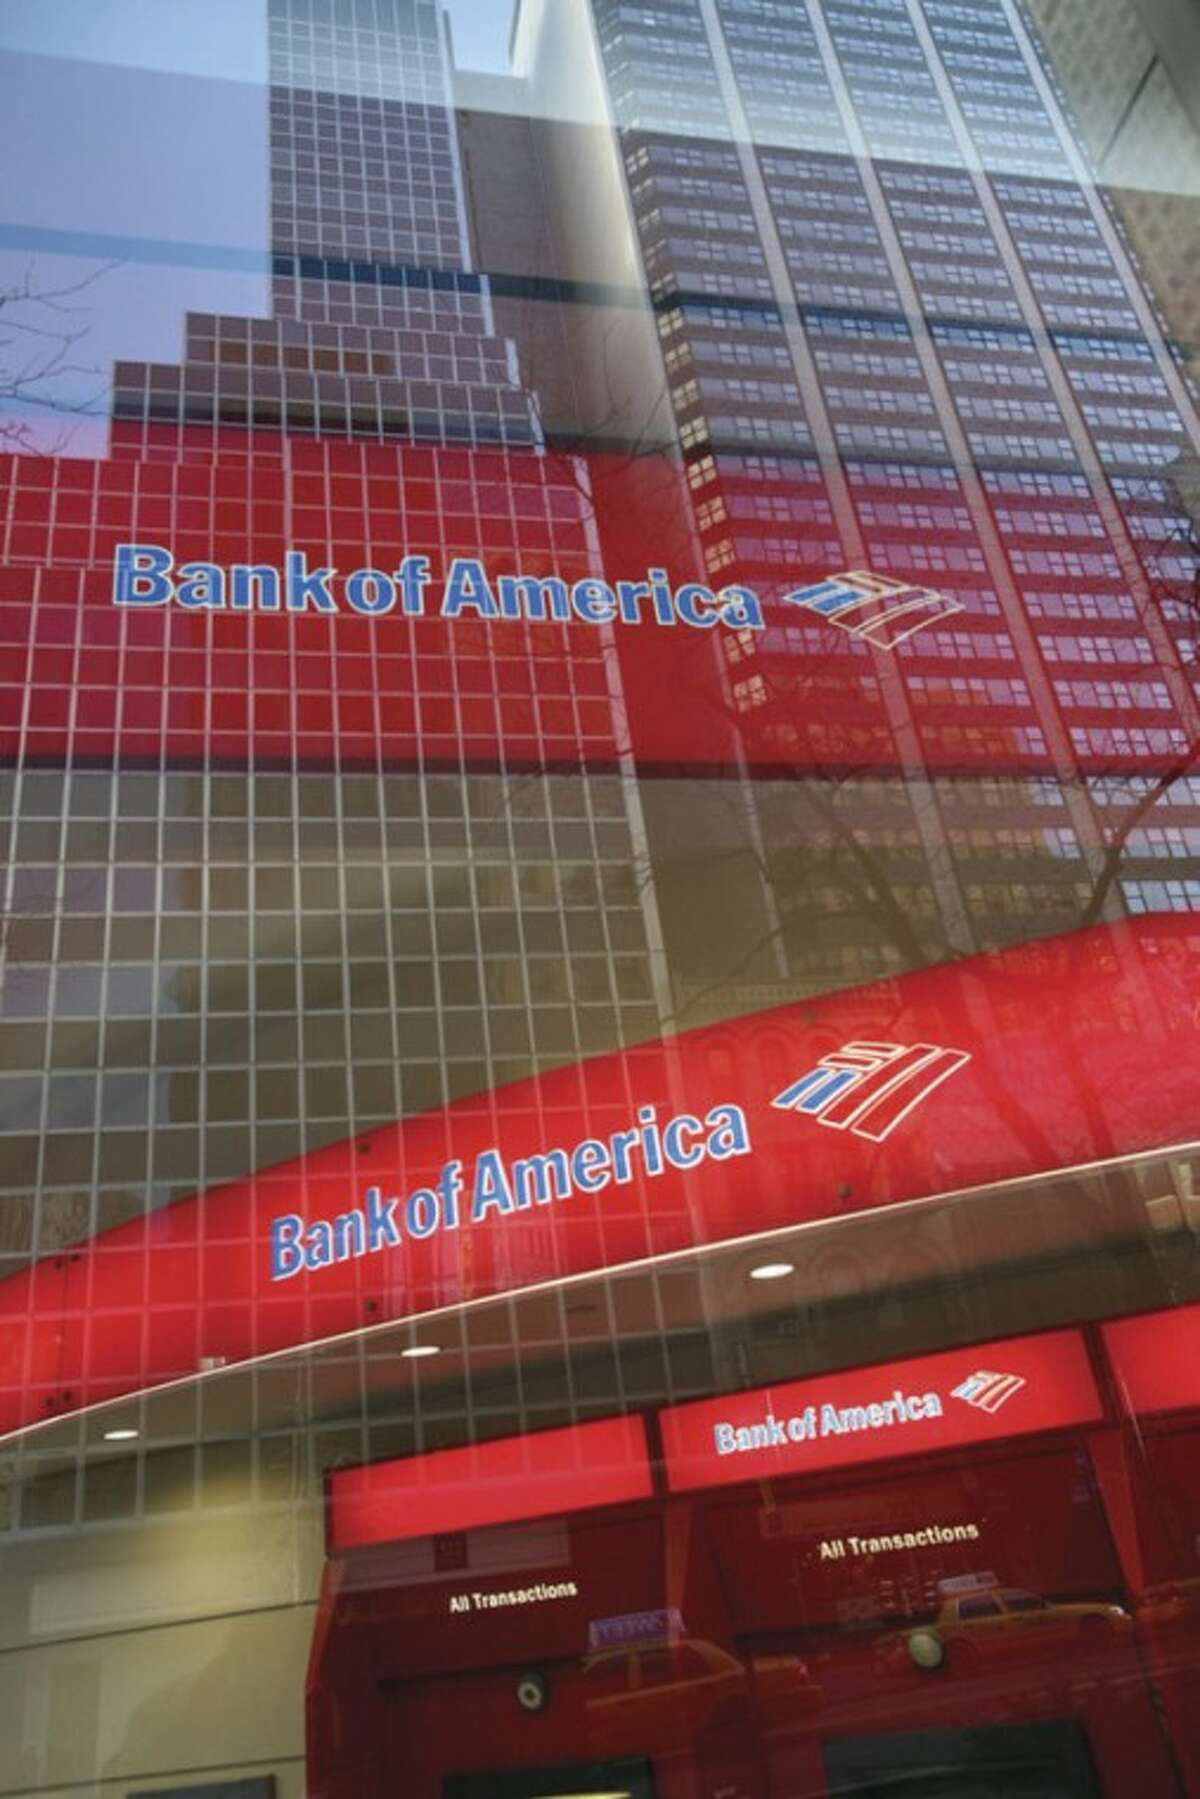 AP file photo / Mark Lennihan In this Jan. 25, 2009, file photo, a Bank of America branch office is shown in New York.